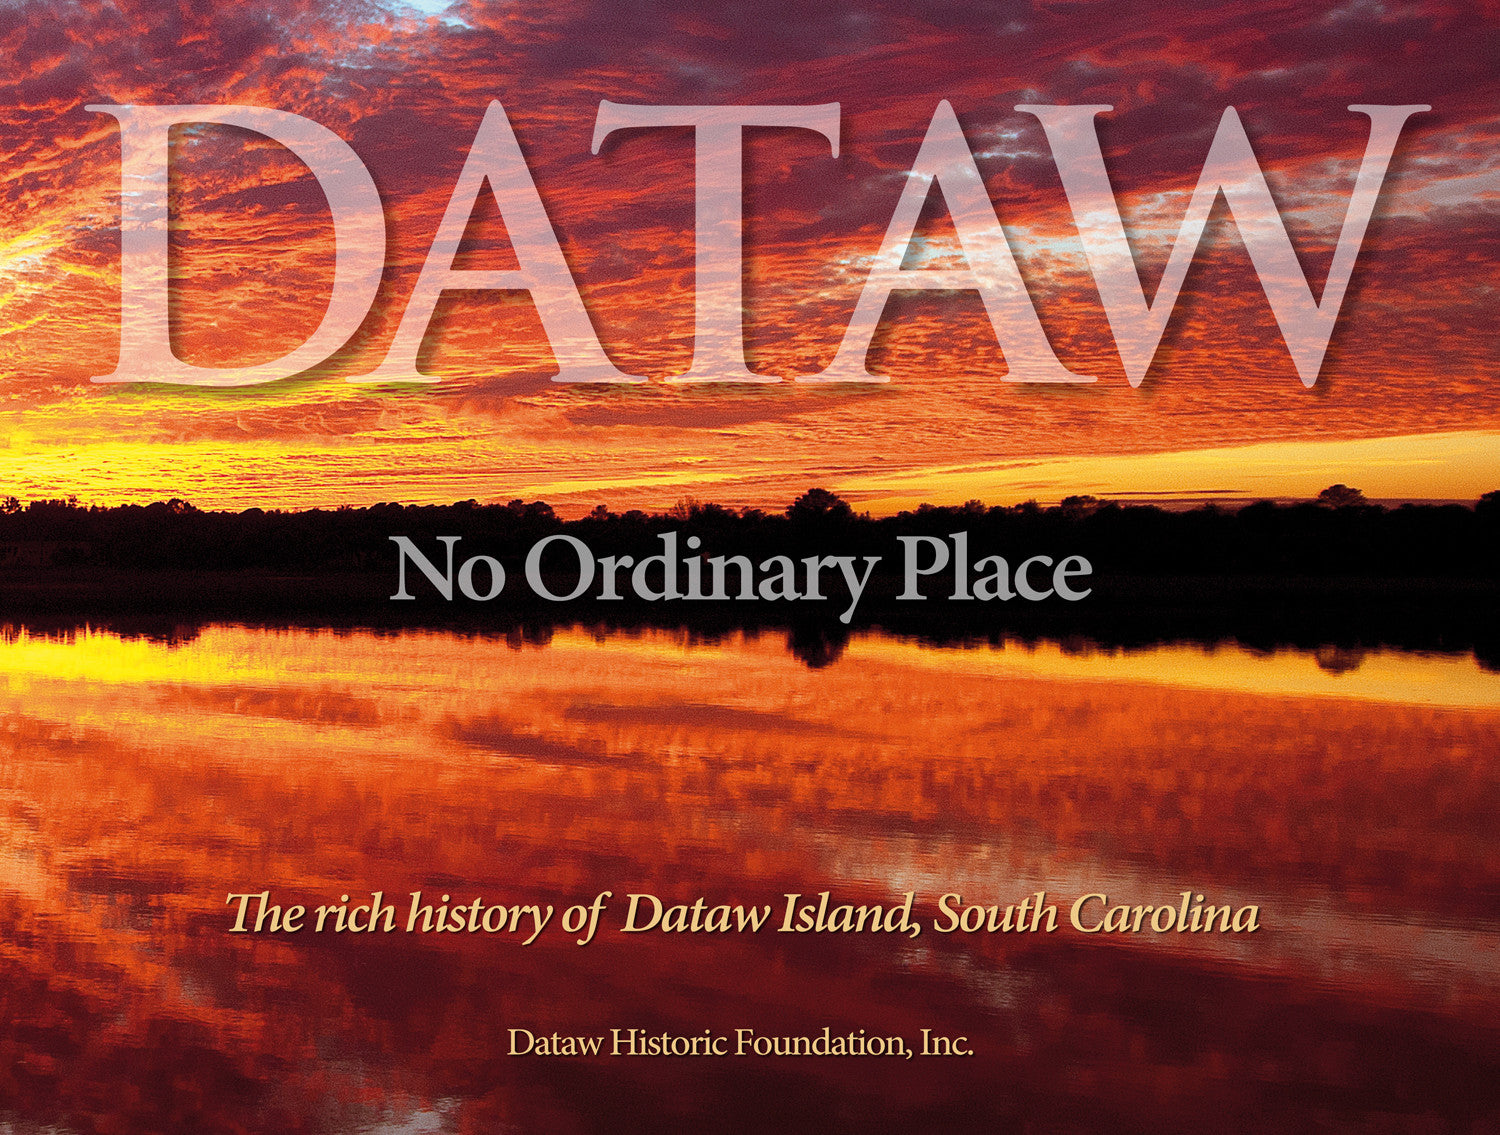 Dataw Island Historical Photography and text book Foreward Lawrence Sanders Rowland